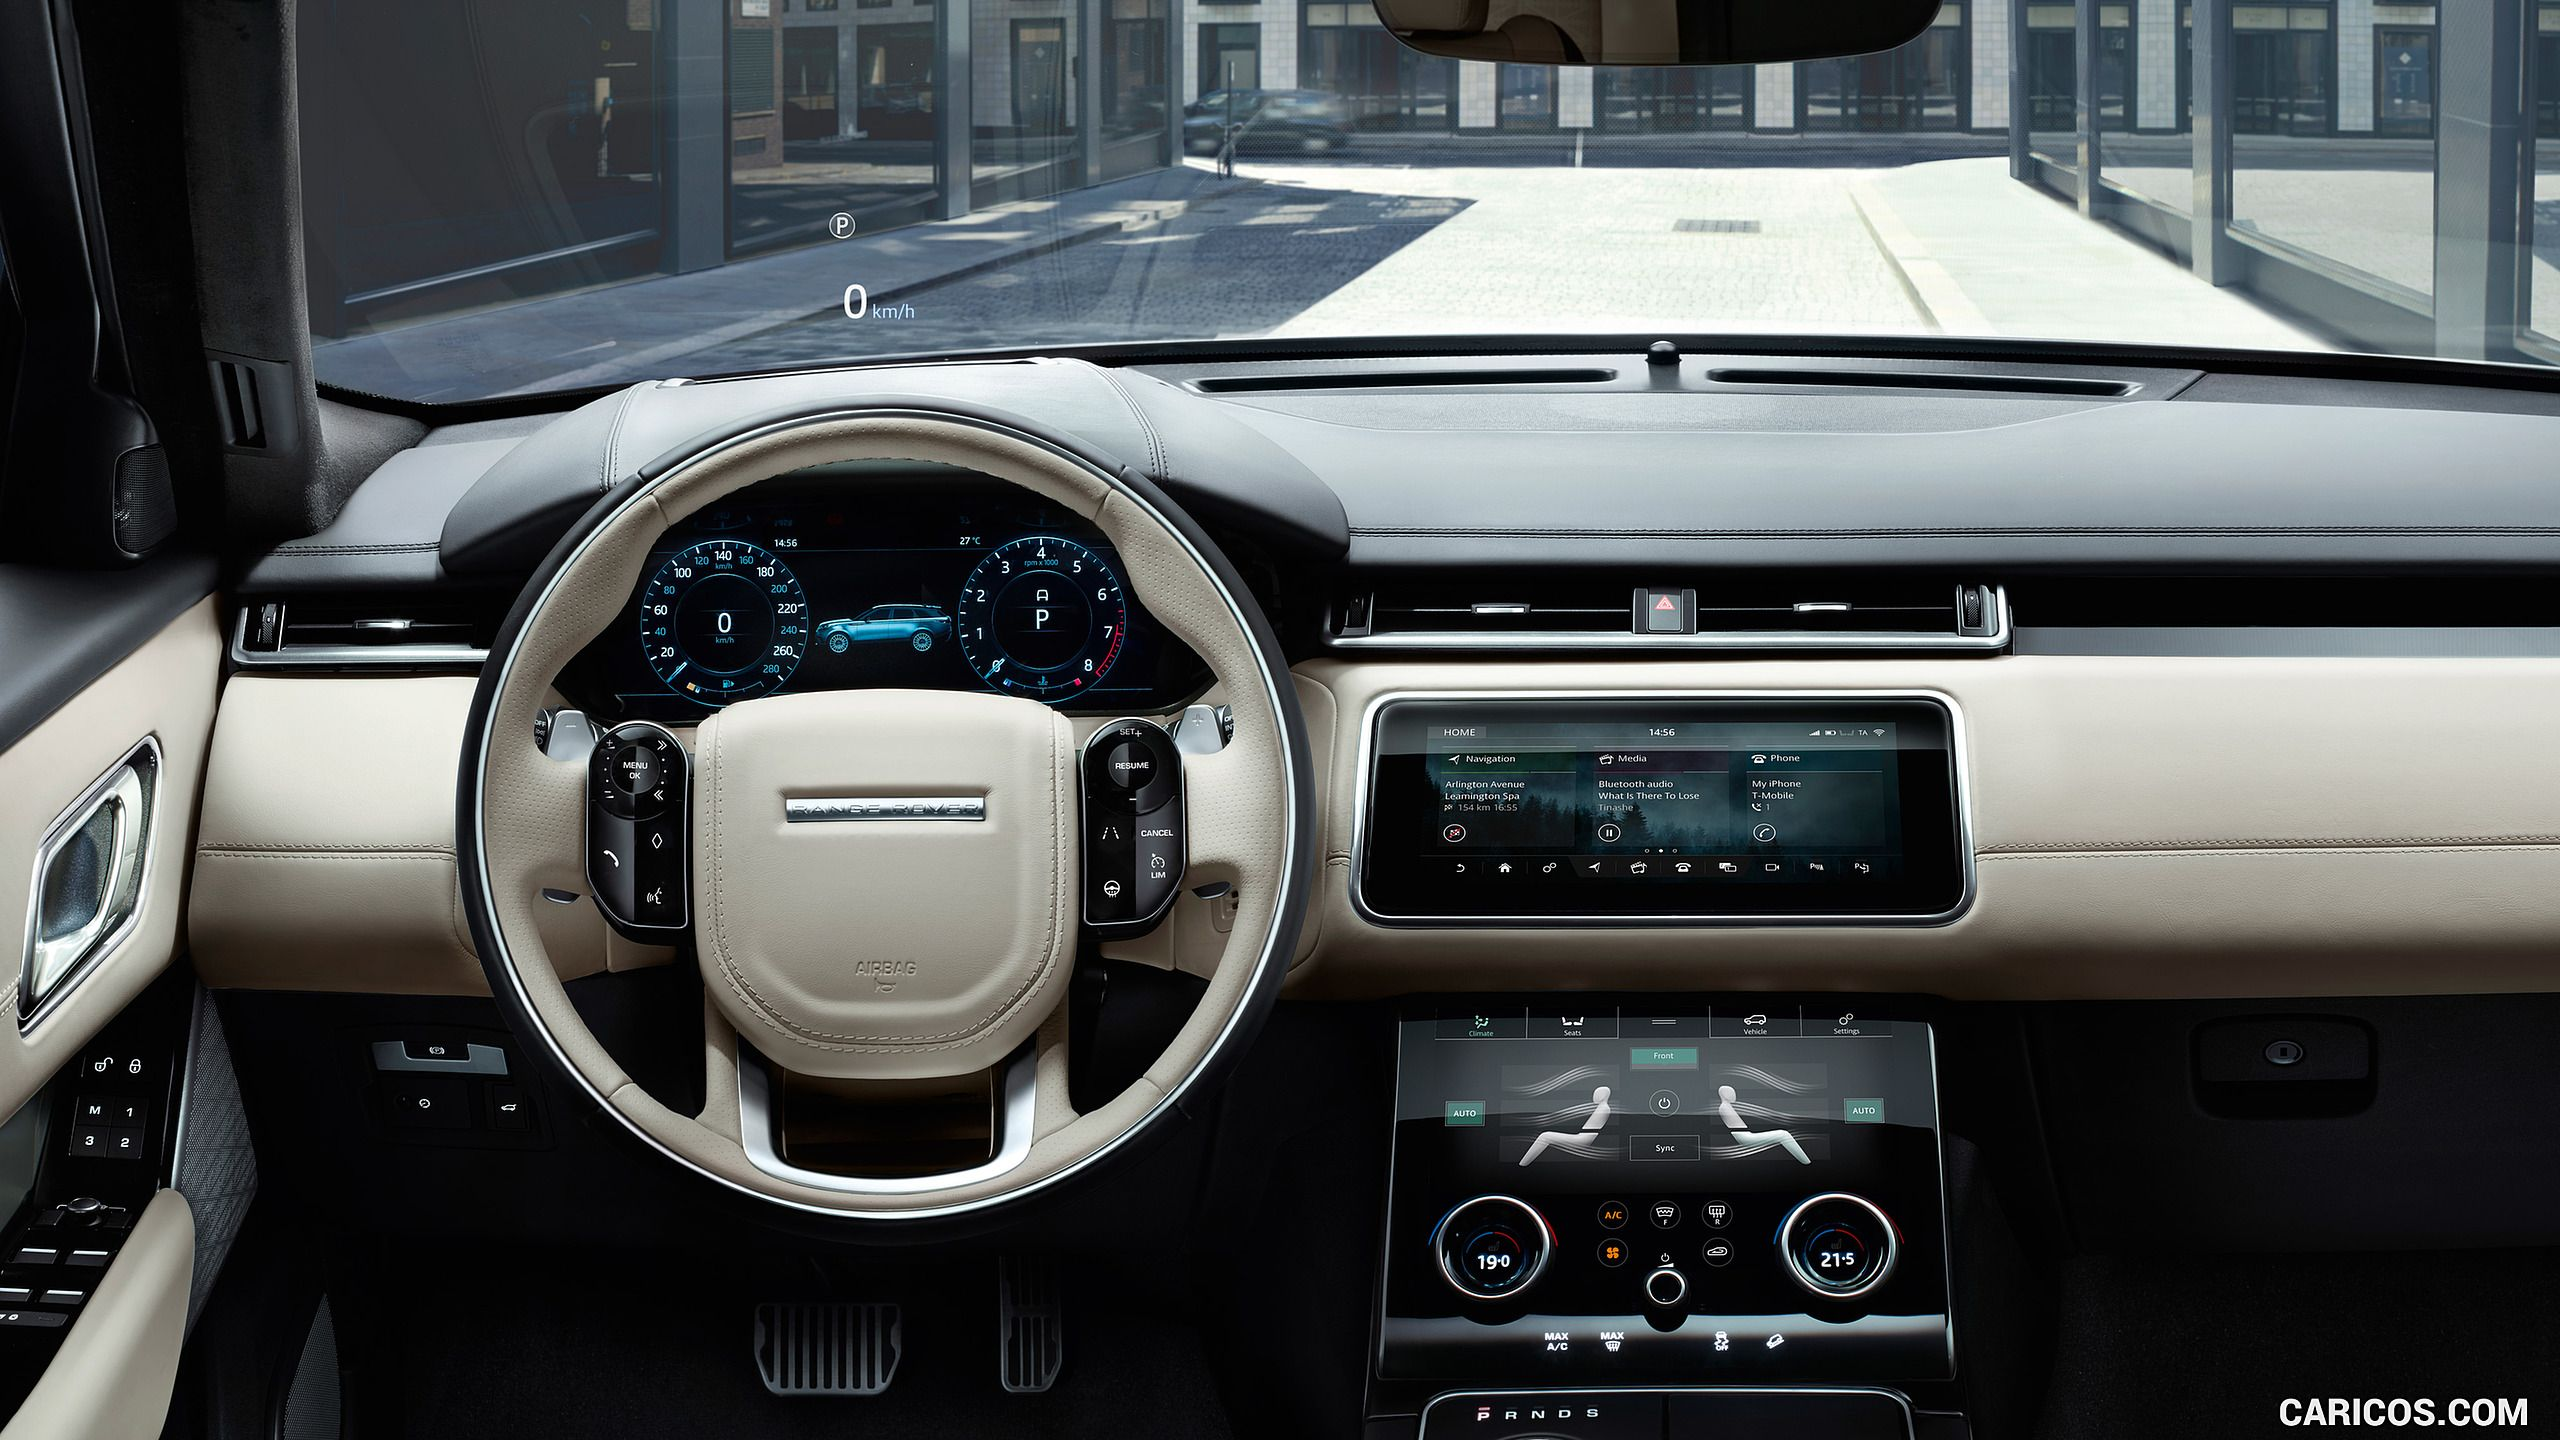 2018 Range Rover Velar Wallpaper Range rover, Carro land